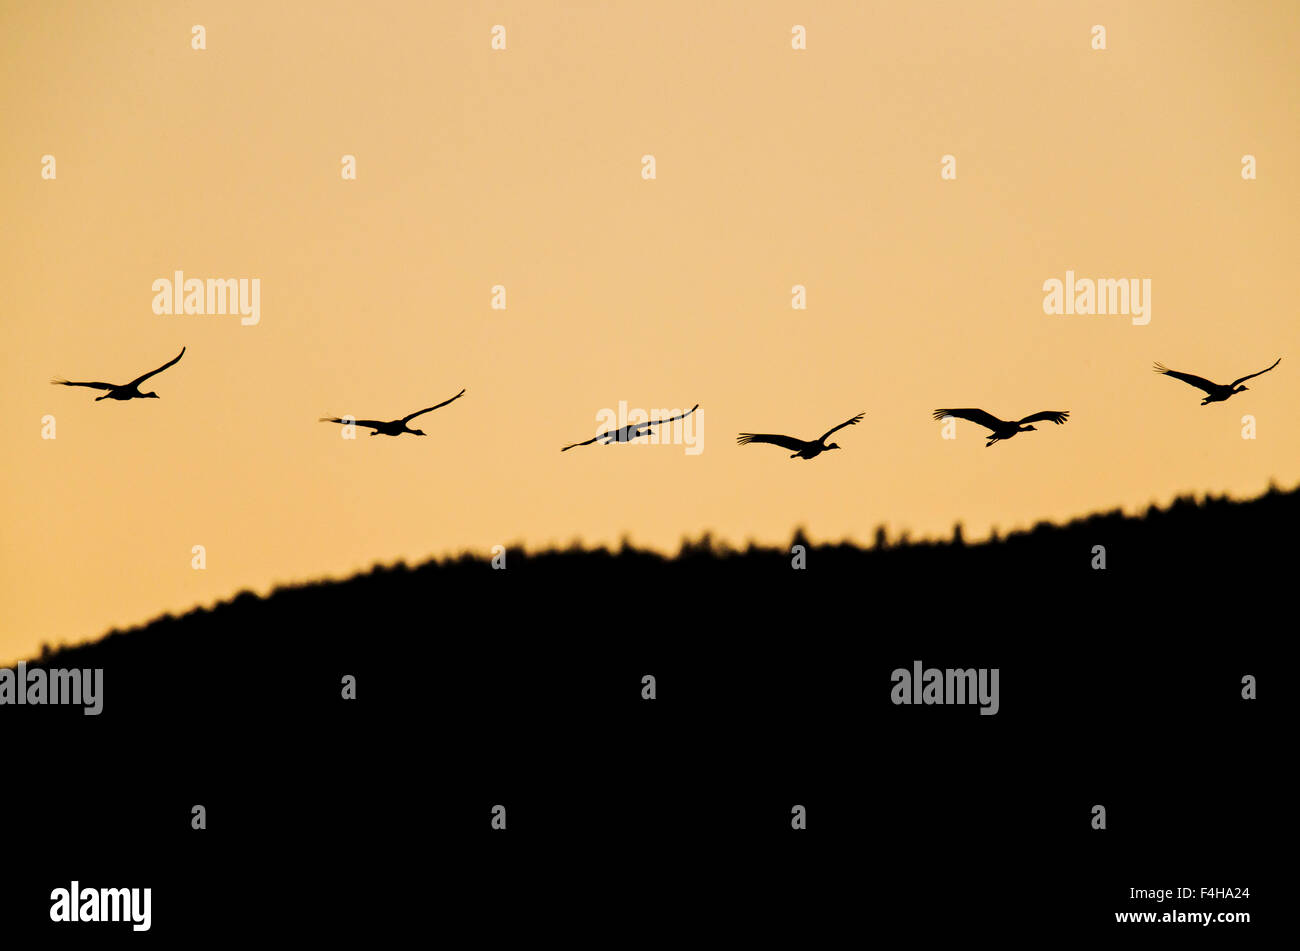 Kraniche im Flug bei Sonnenaufgang, Monte Vista National Wildlife Refuge, Colorado, USA Stockbild